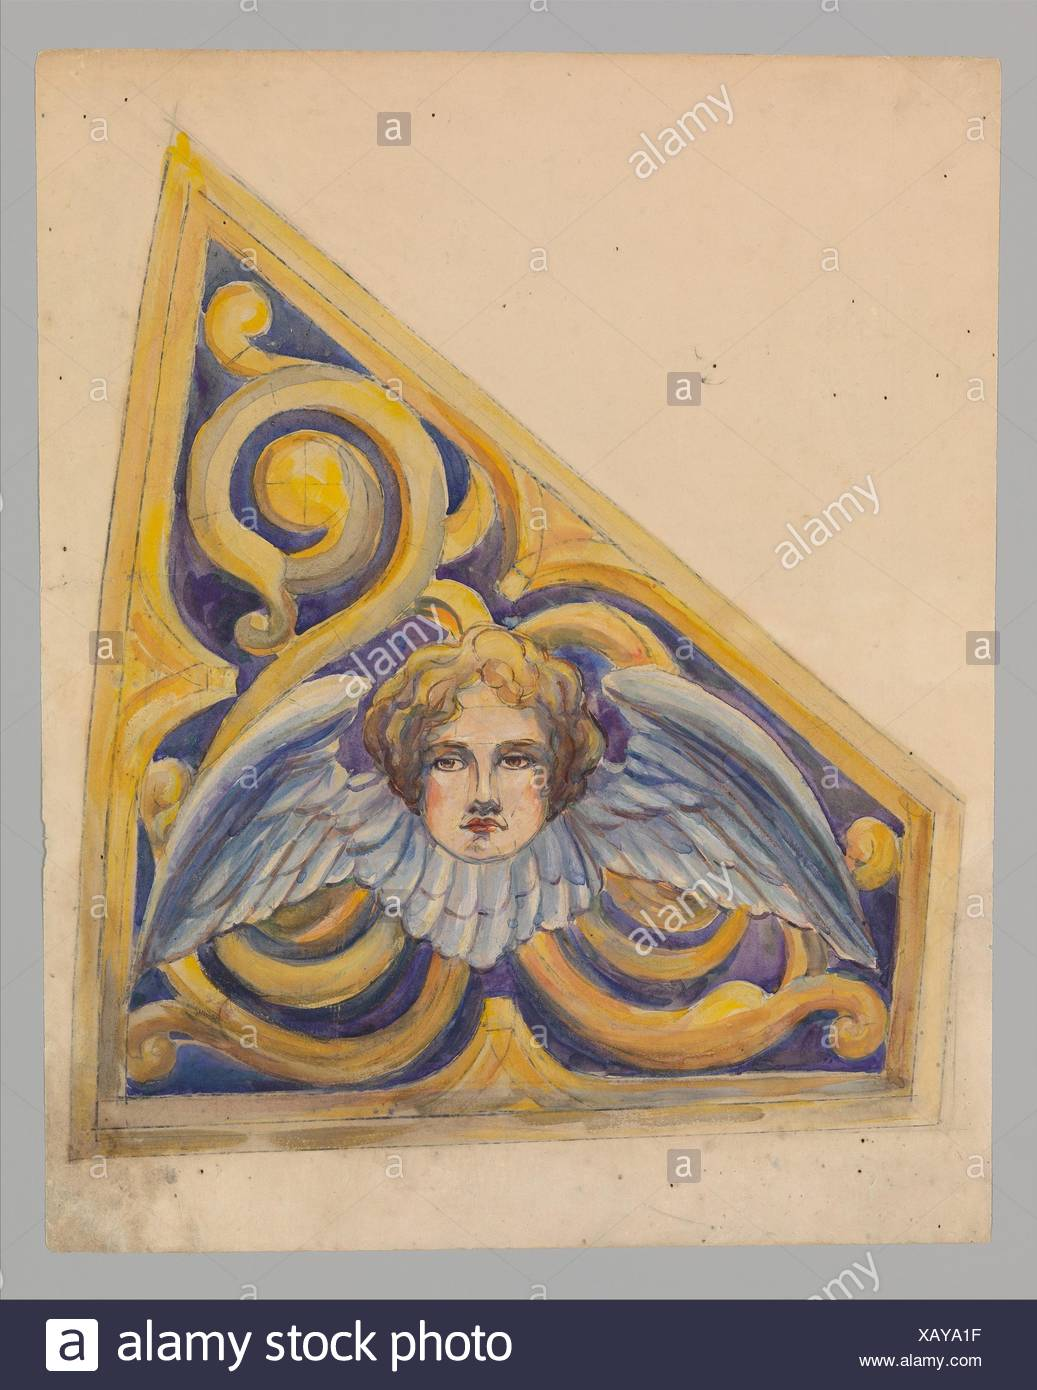 Design for trapezoidal panel. Artist: Louis Comfort Tiffany (American, New York 1848-1933 New York); Maker: Possibly Tiffany Glass Company (1885-92); - Stock Image